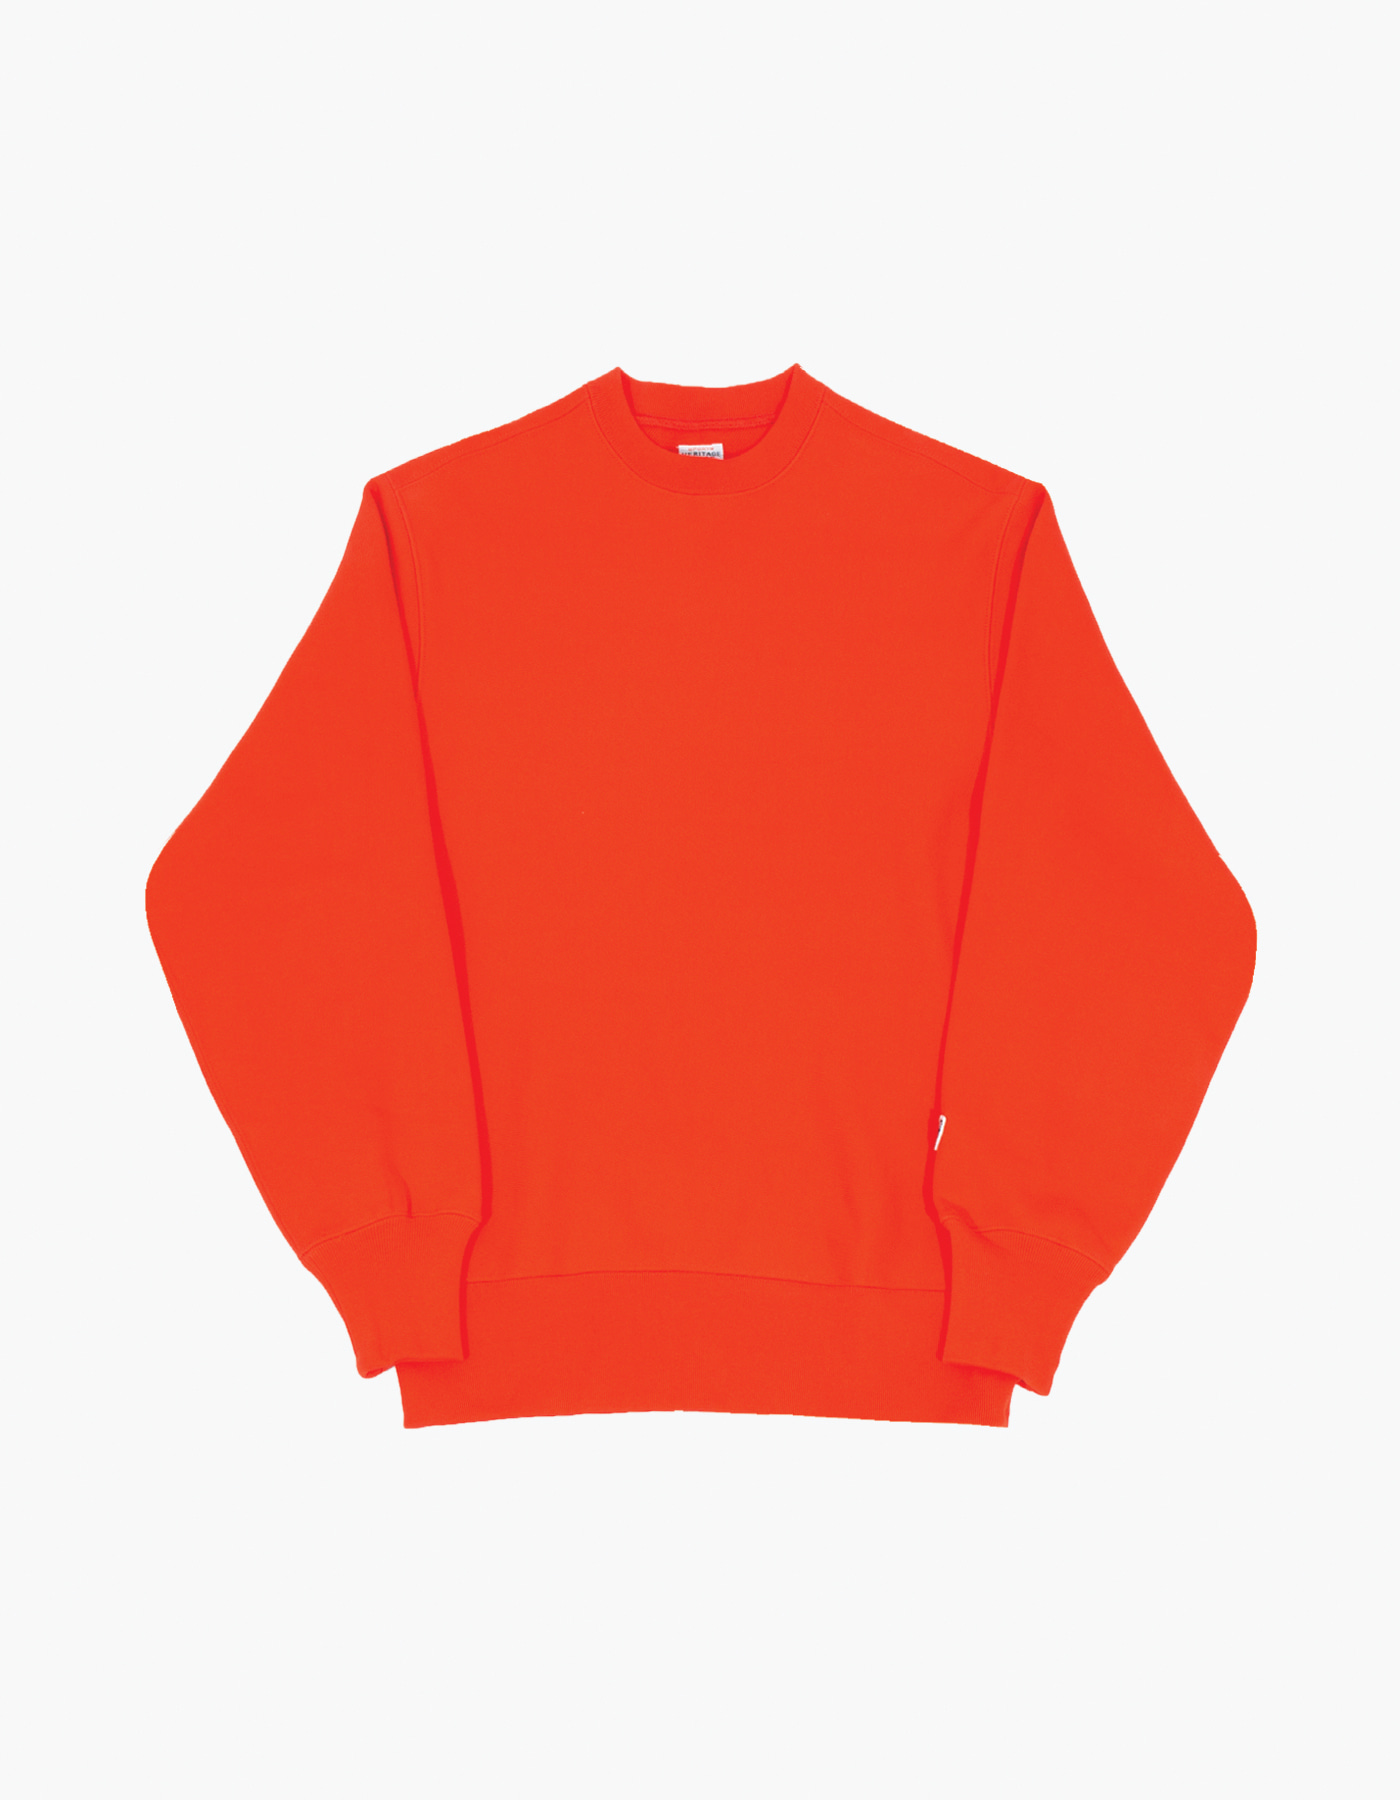 ACS CREWNECK / RED